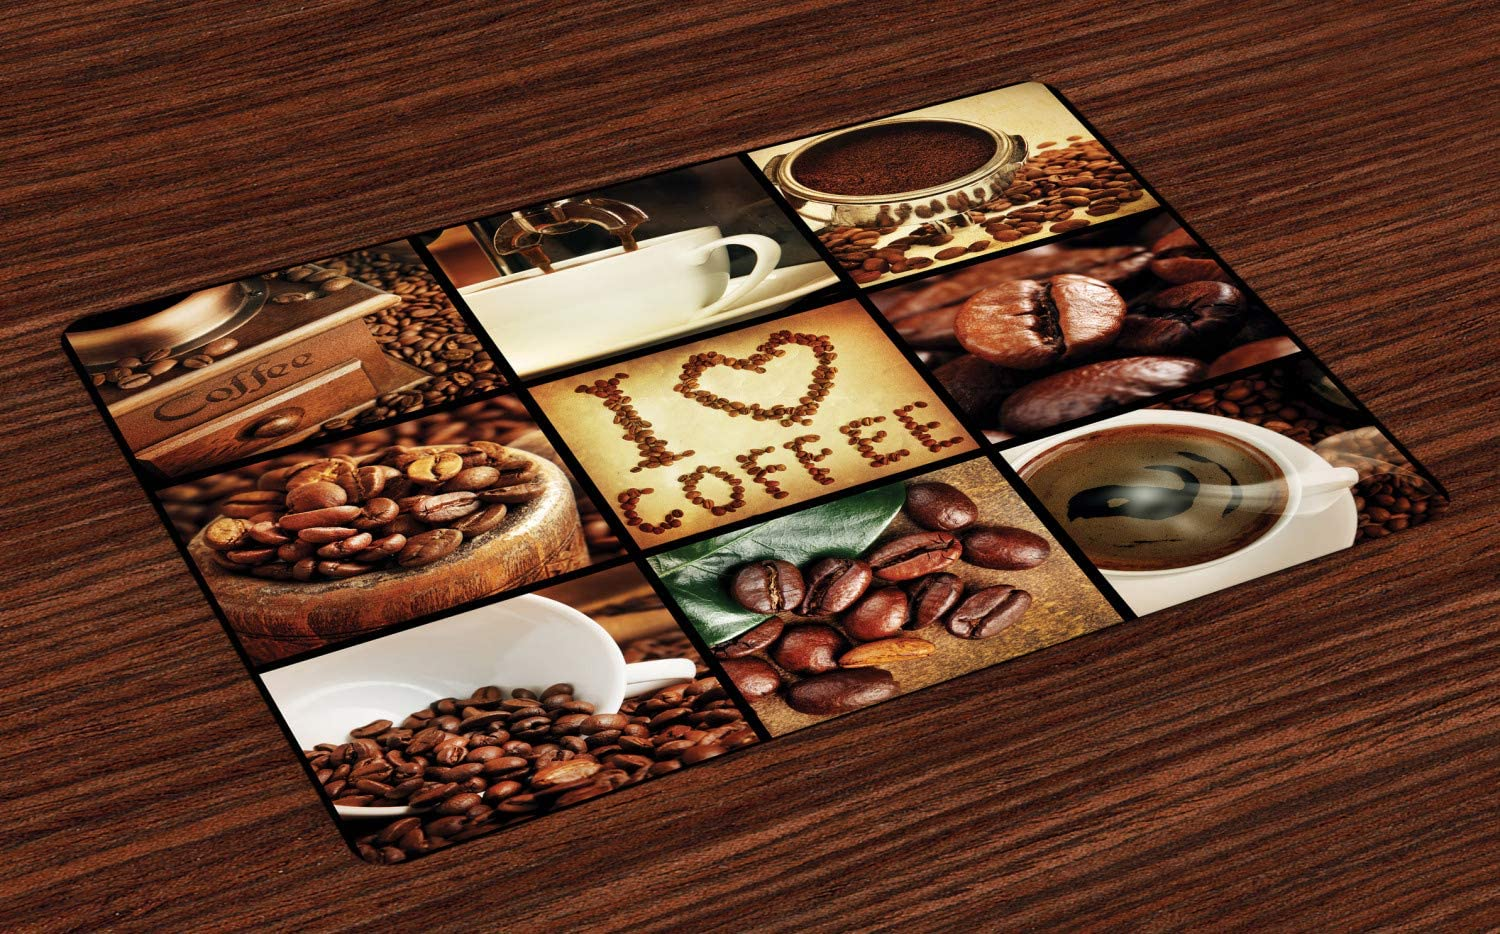 Lunarable Brown Place Mats Set of 4, I Love Coffee Theme Collage Roasted Beans Brewing Machines and Cups Aromatic Drink, Washable Fabric Placemats for Dining Room Kitchen Table Decor, White Brown